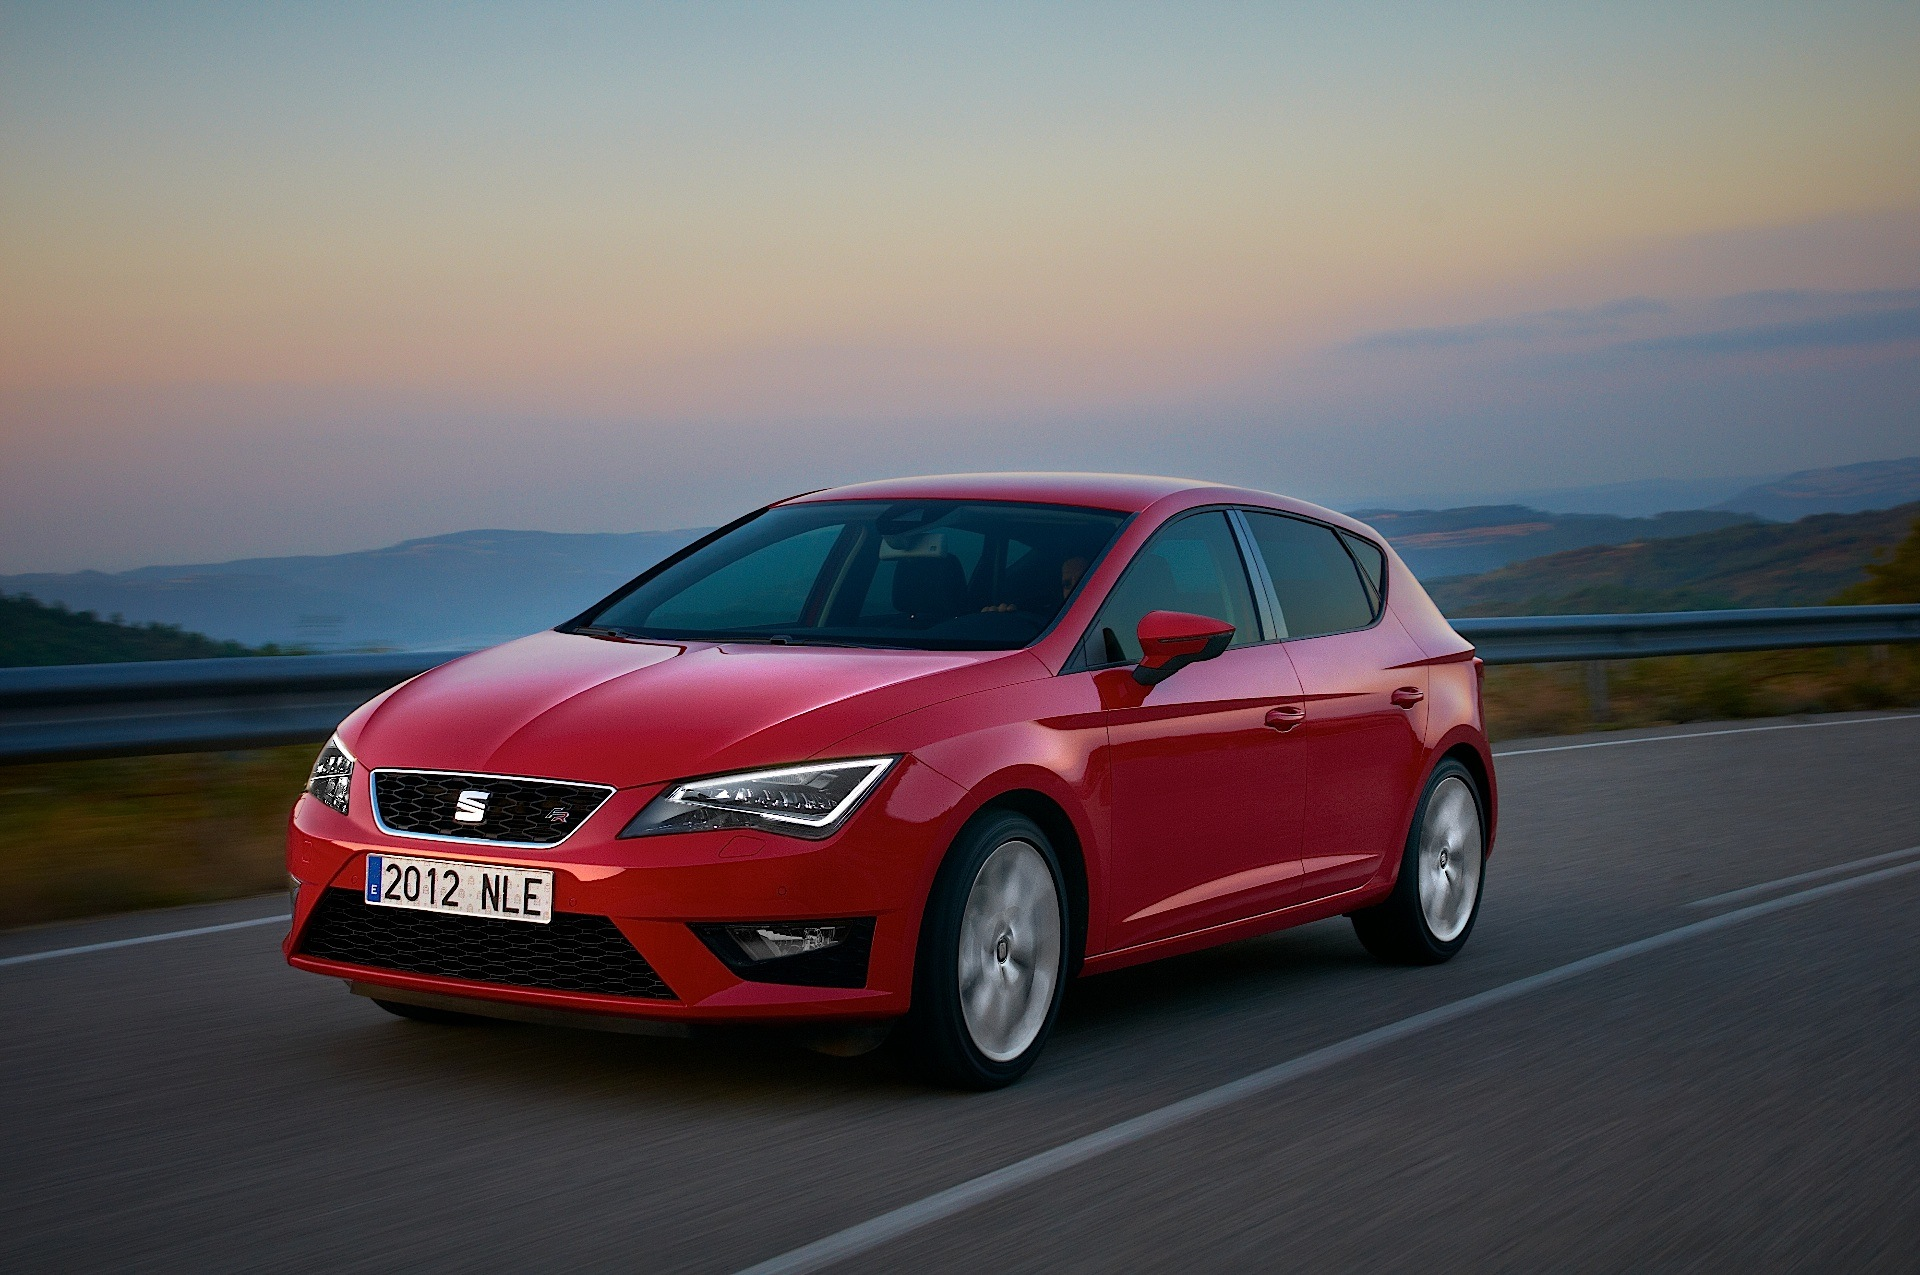 seat leon 5 doors specs 2012 2013 2014 2015 2016. Black Bedroom Furniture Sets. Home Design Ideas